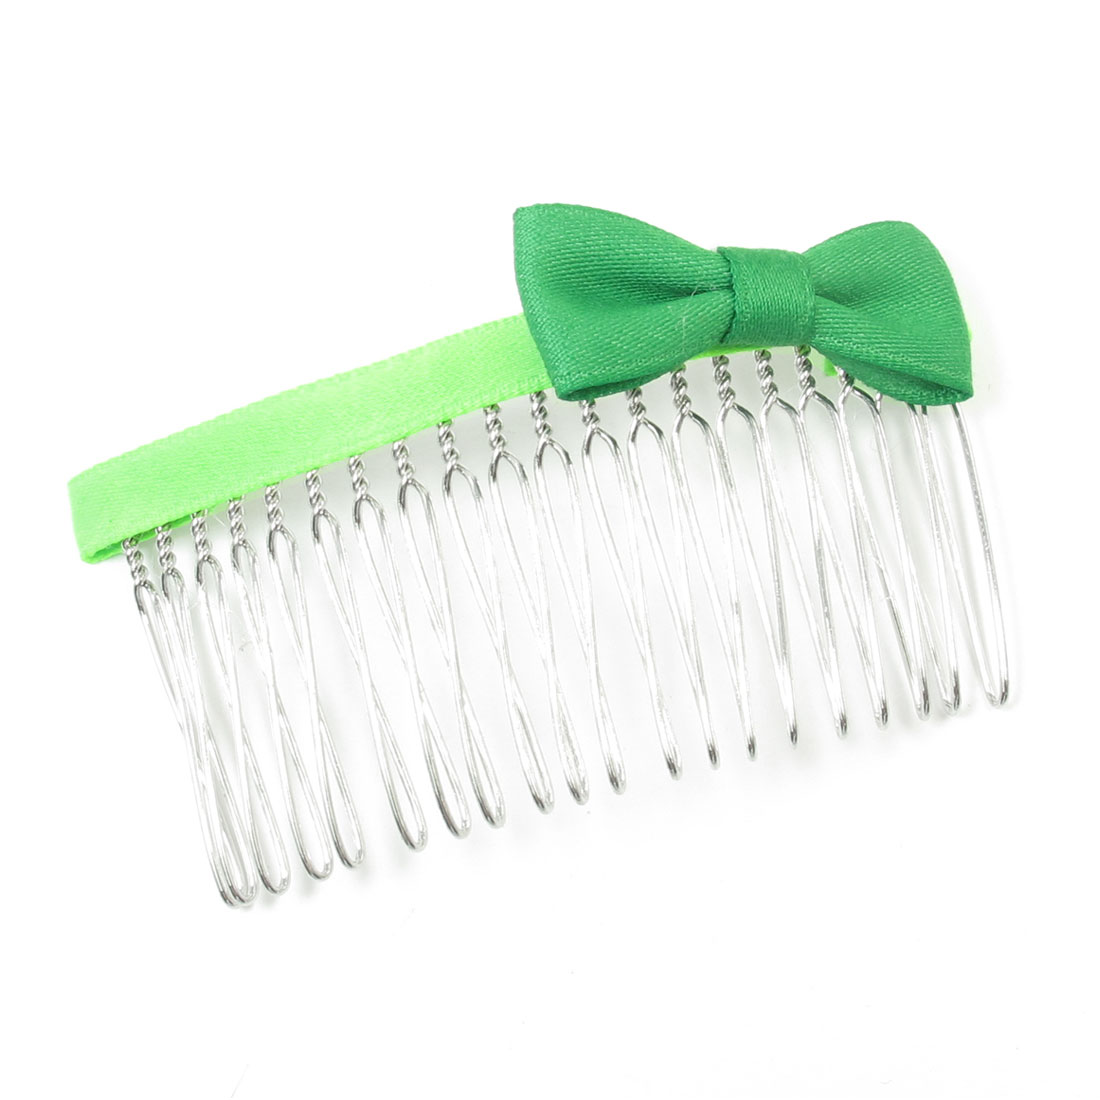 7.5cm Long Two Tone Green Bowknot Accent Metal Hair Comb Clip Clamp for Women